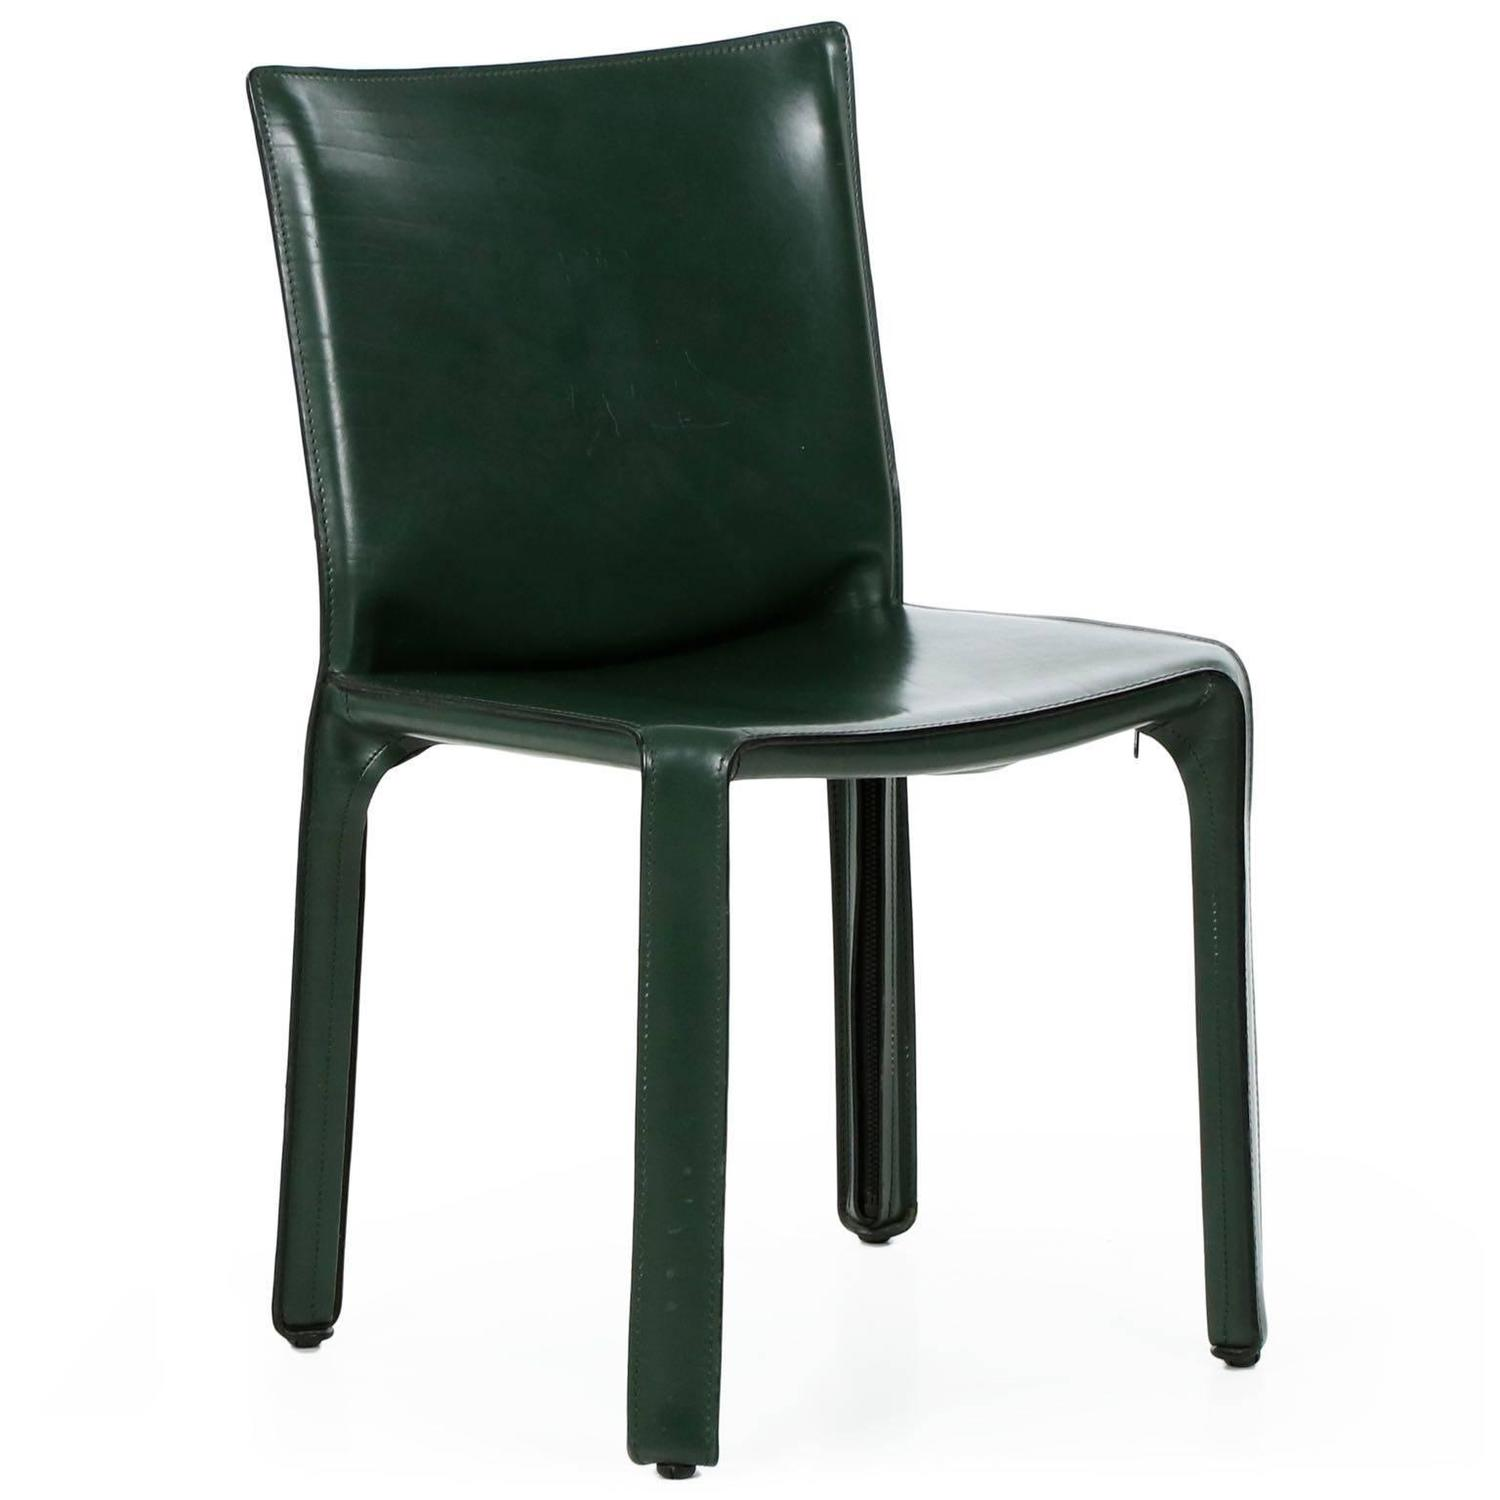 leather side chair cover hire dundee mario bellini for cassina quotcab quot green saddle